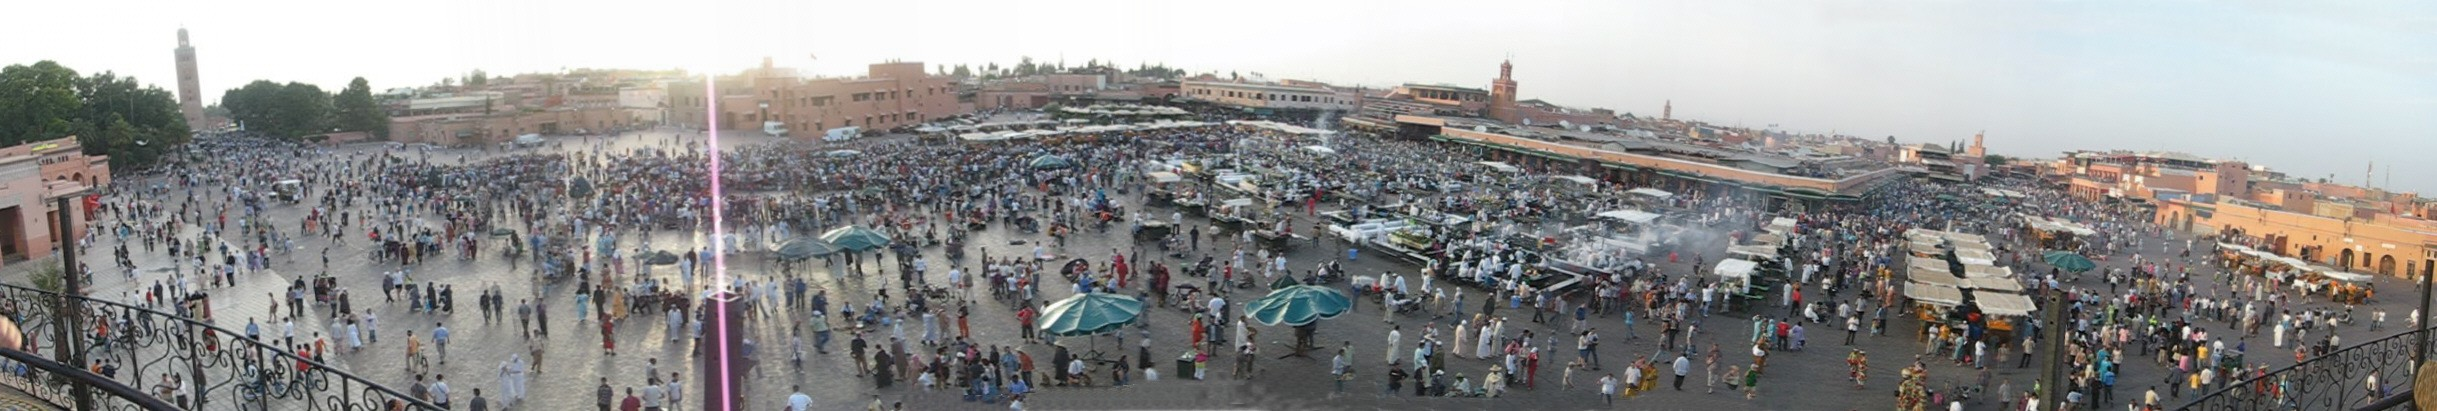 Panoramic Marakesh square Djemaa el Fna.jpg